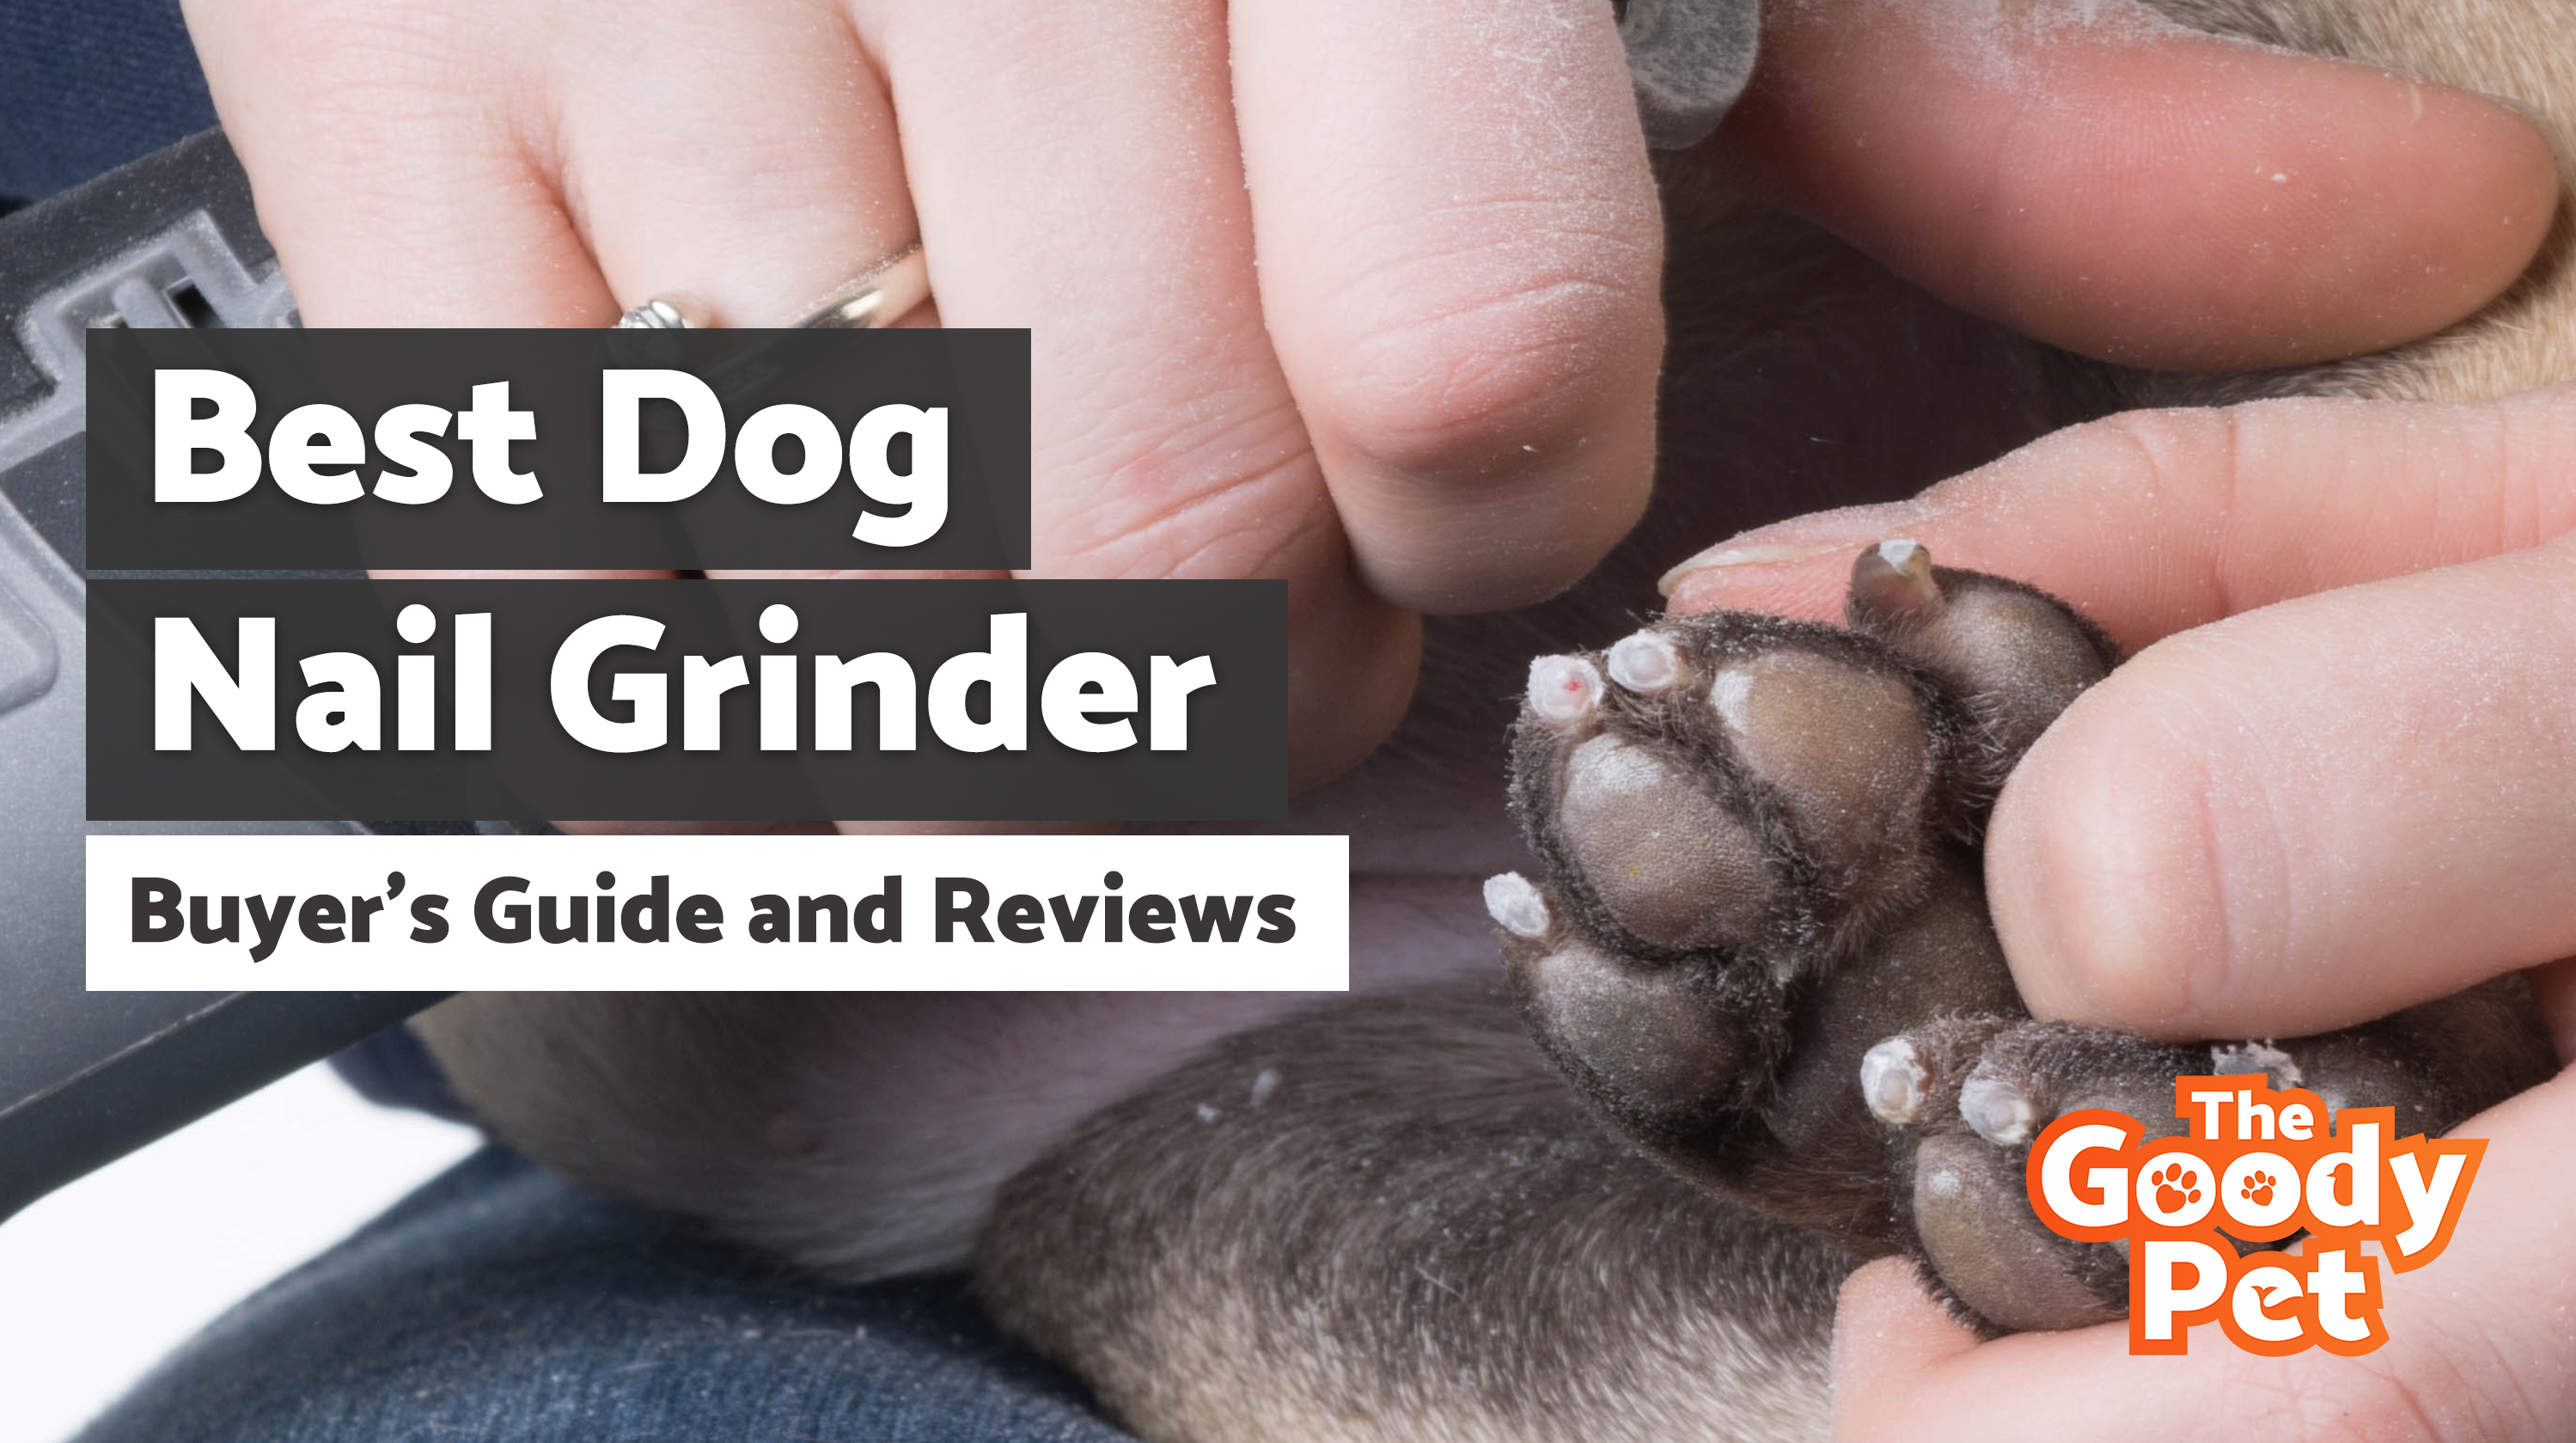 11 Best Dog Nail Grinders (May 2019) | Buyer's Guide & Reviews | The Goody Pet